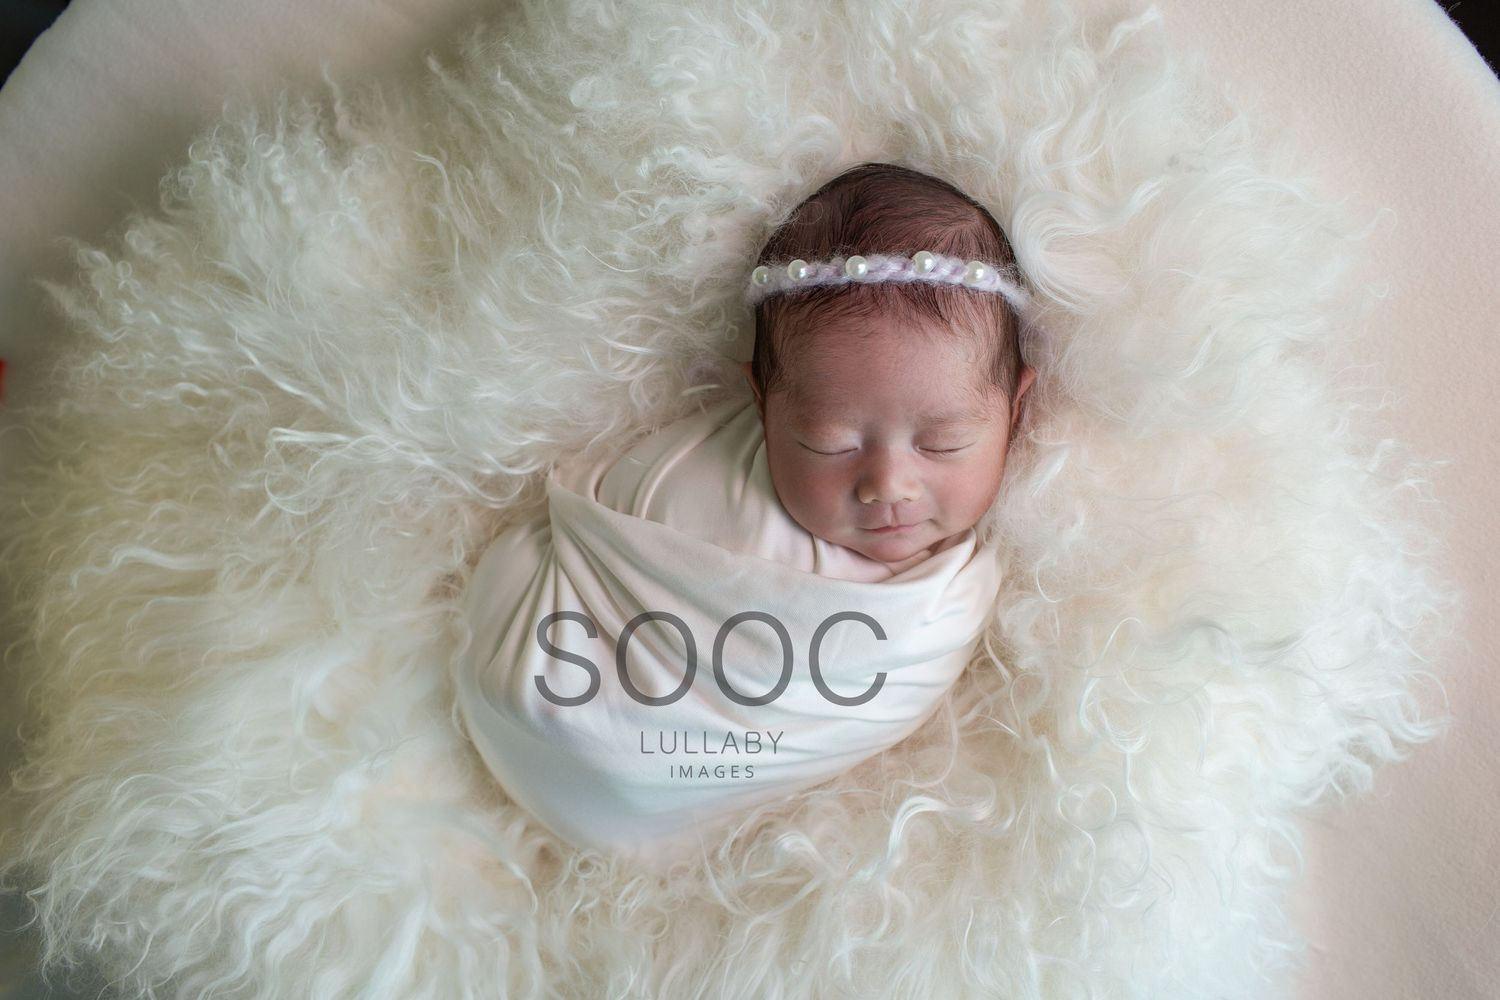 Lullaby Images' Newborn Composite